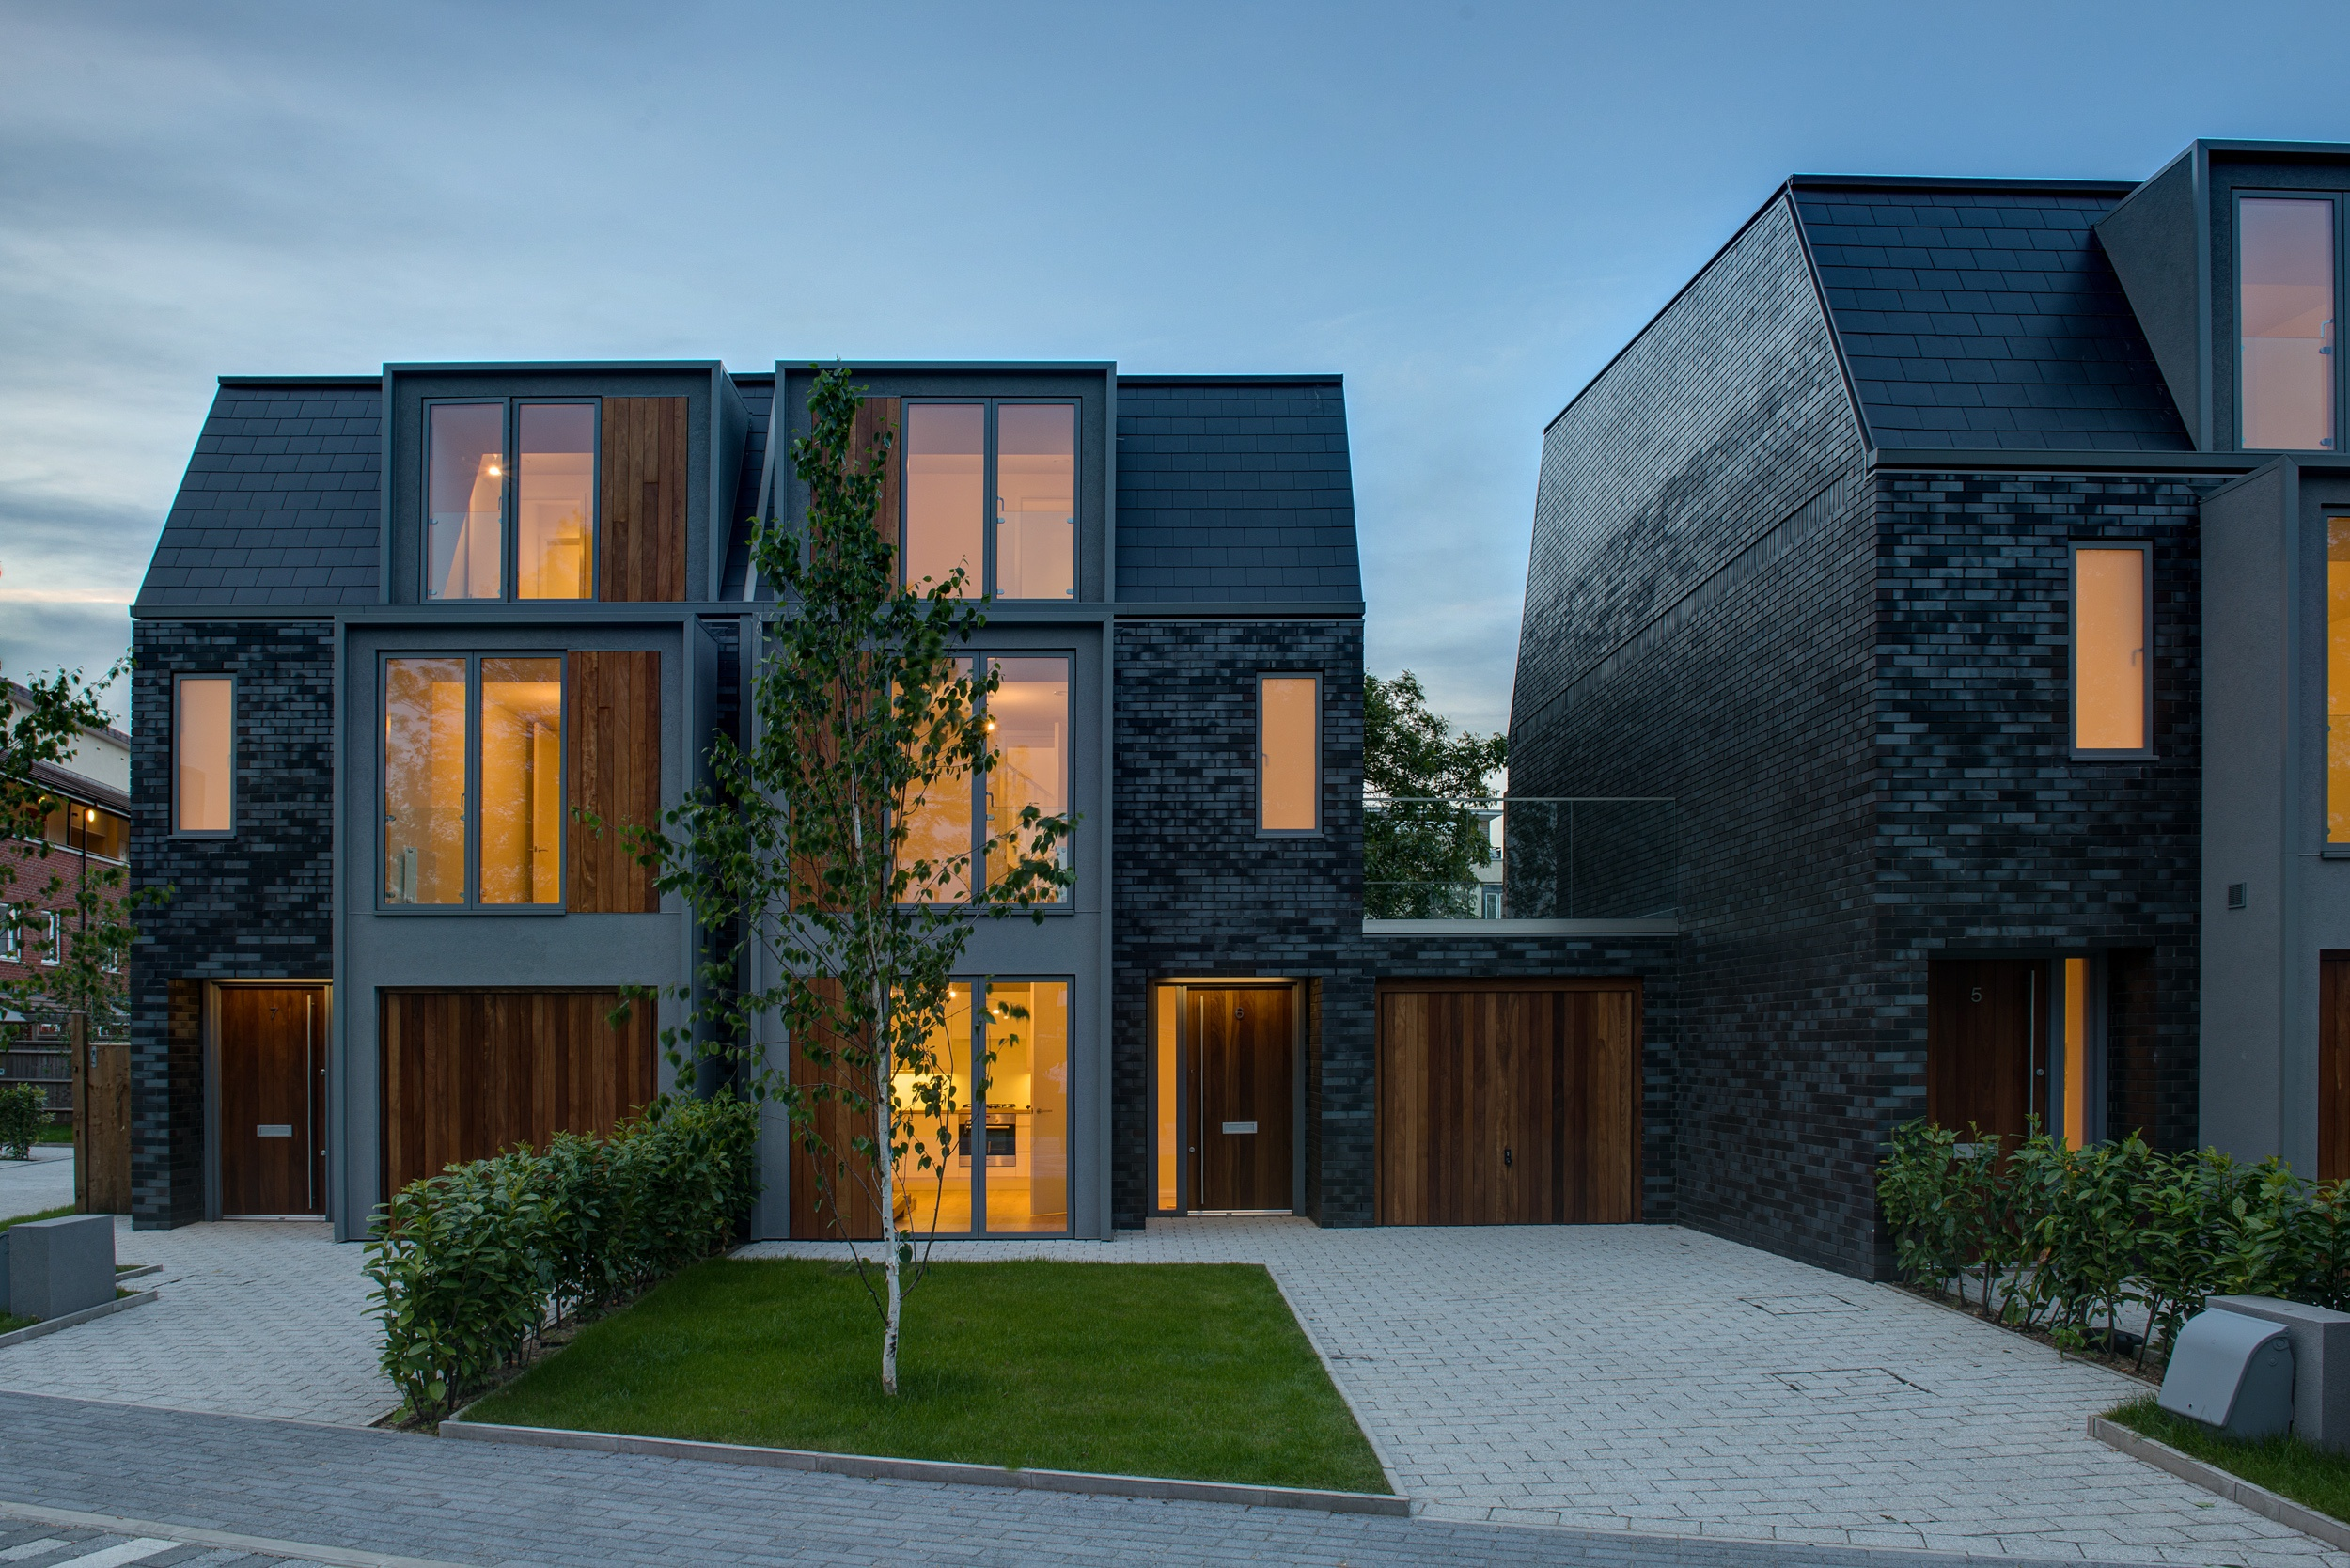 Contemporary designed house with windows with thick frames